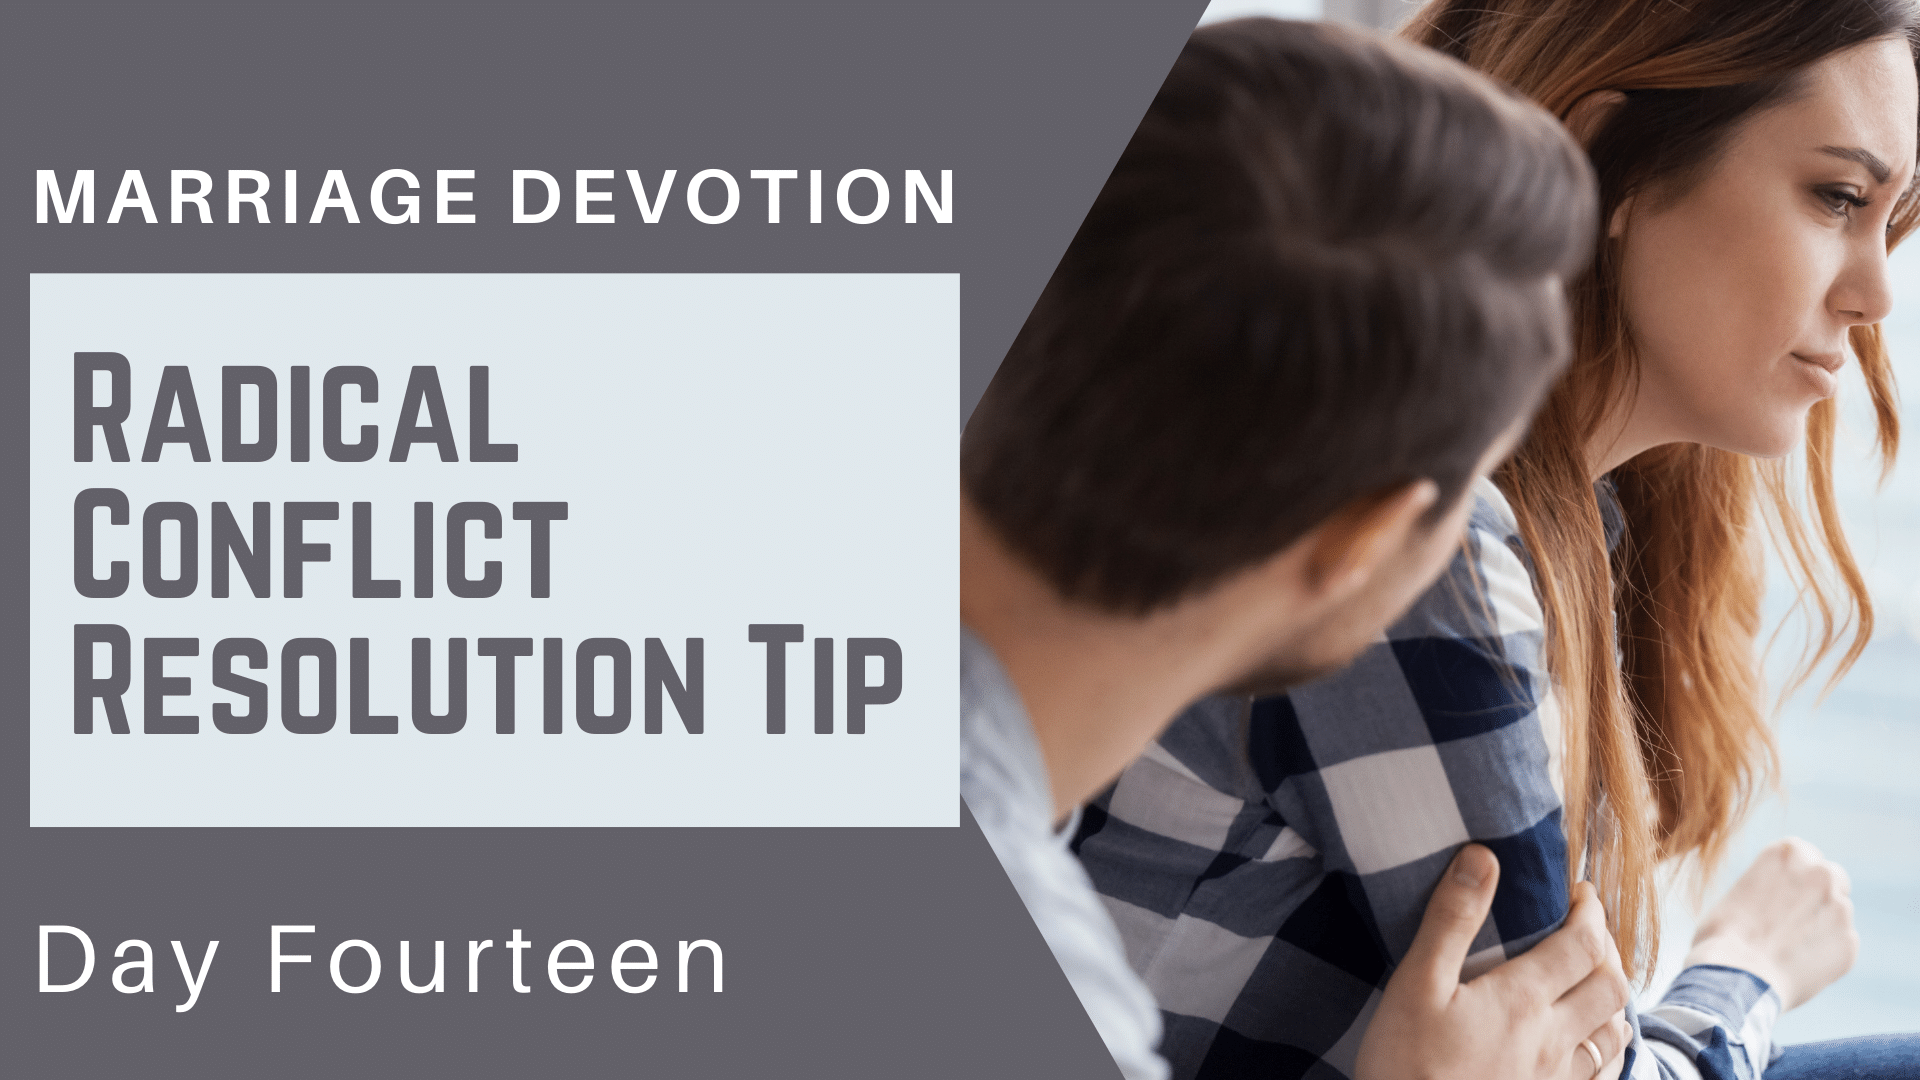 Marriage Devotion Day 14 – Radical Conflict Resolution Tip